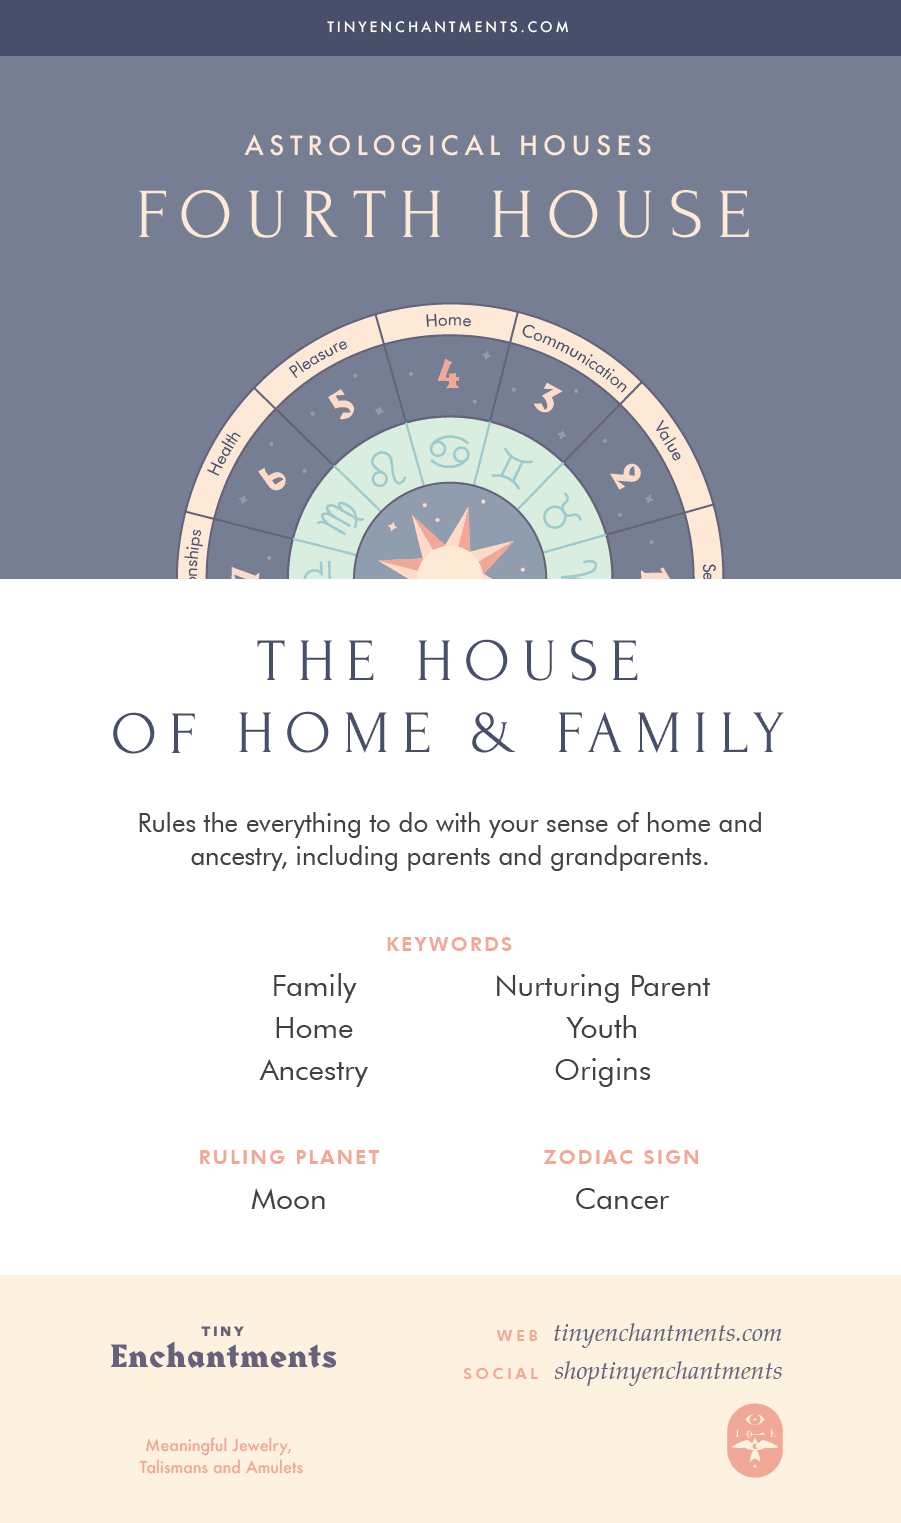 The Fourth House - The House of Home and Family - 4th House